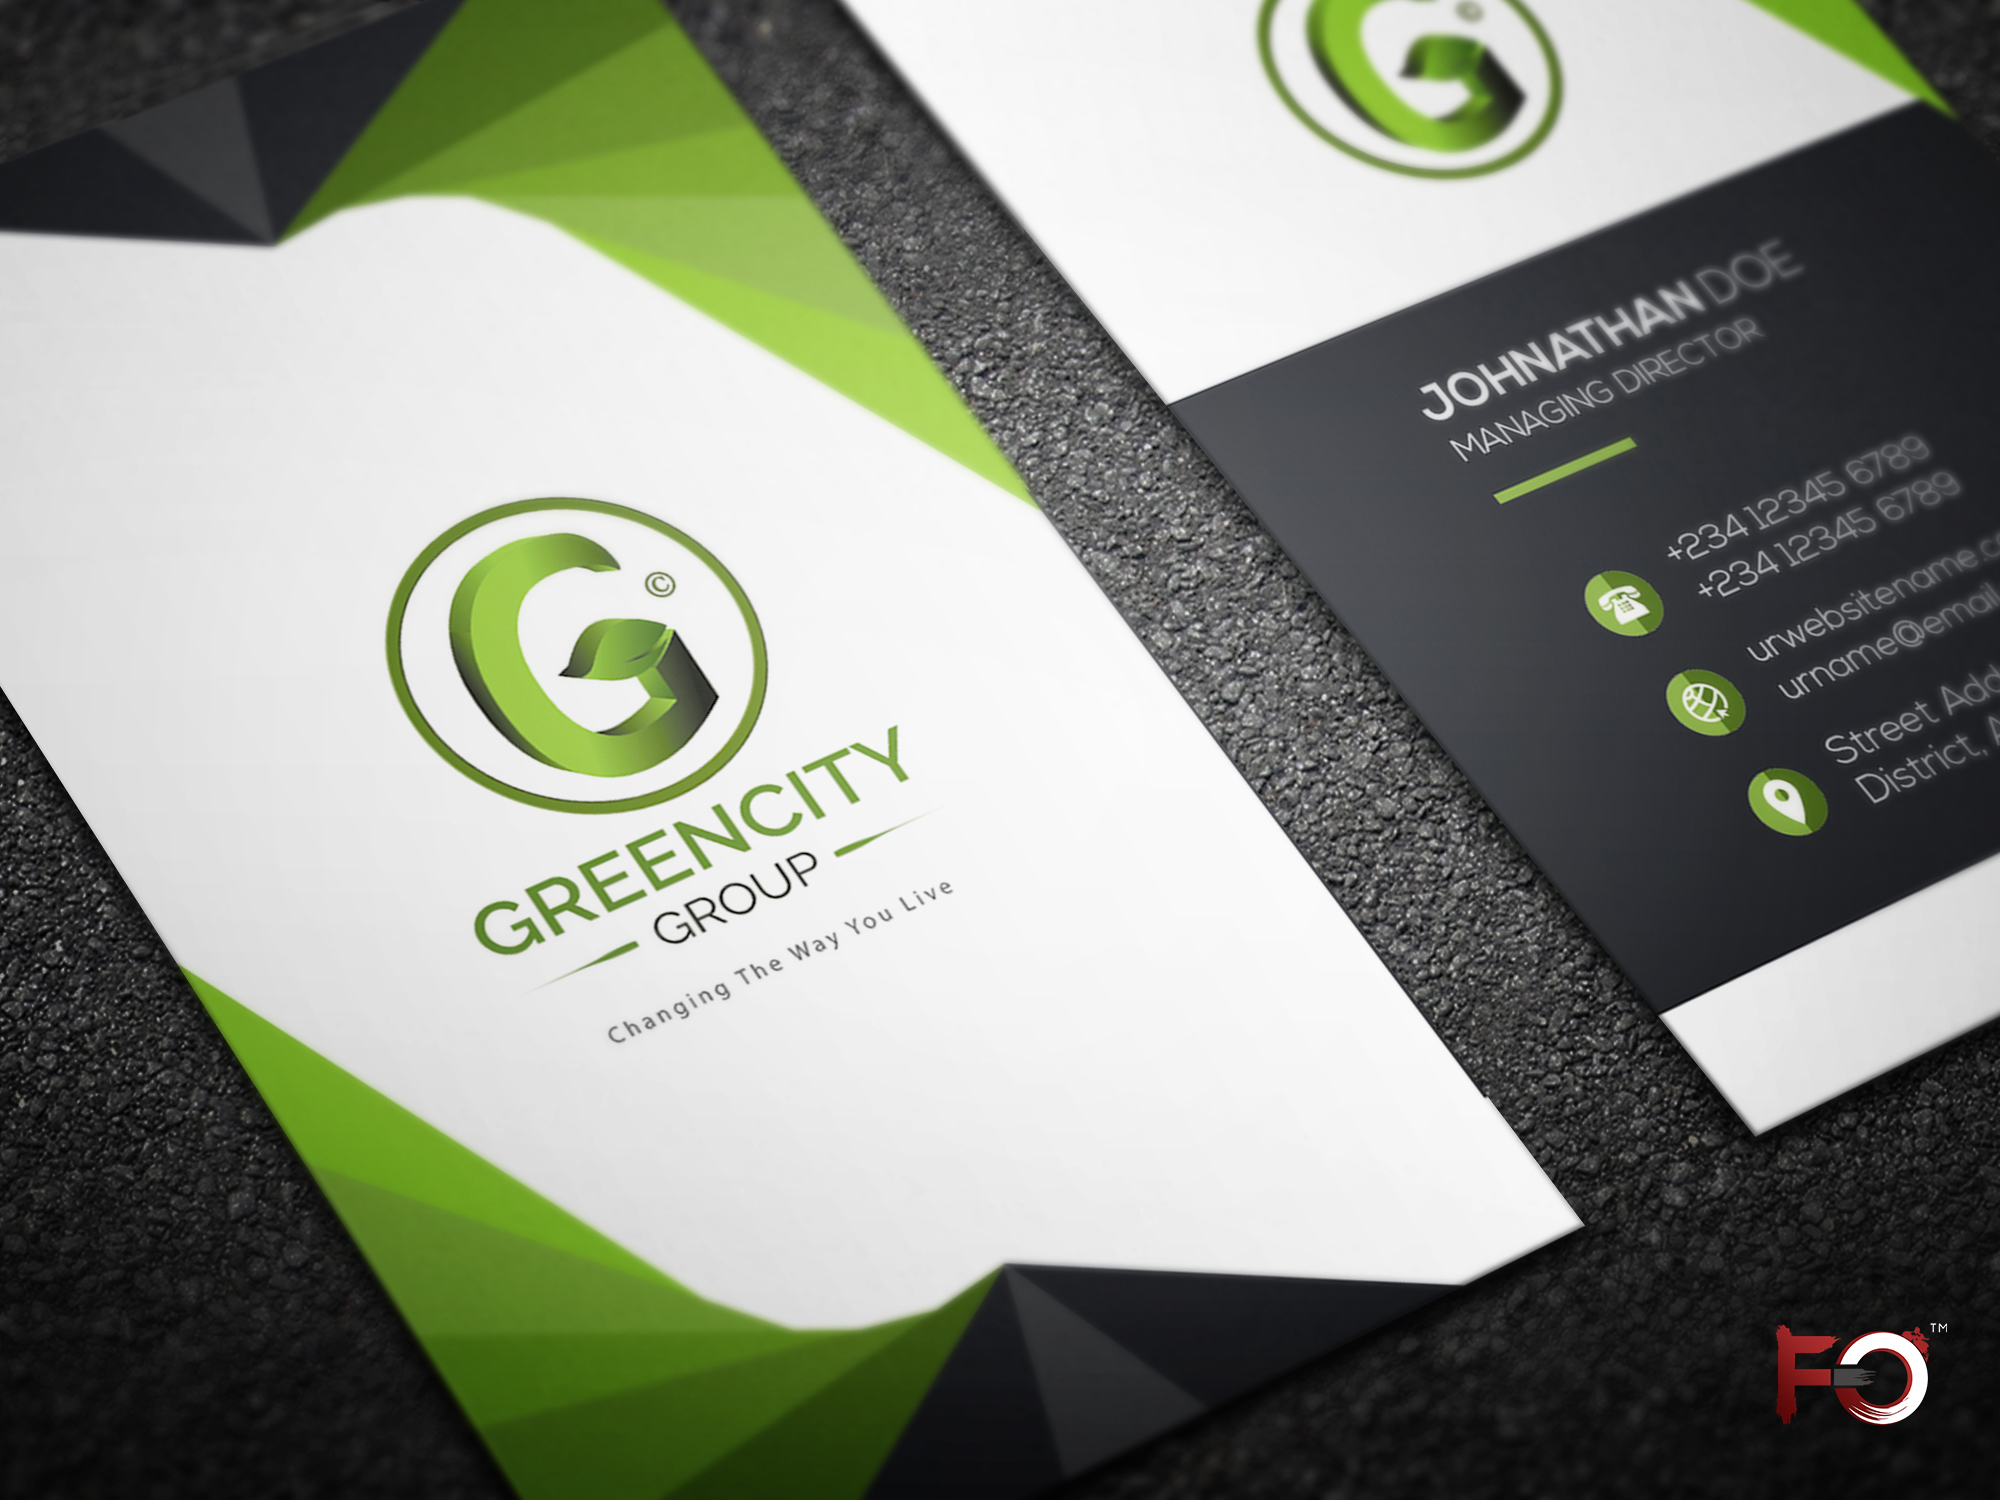 Green City Group